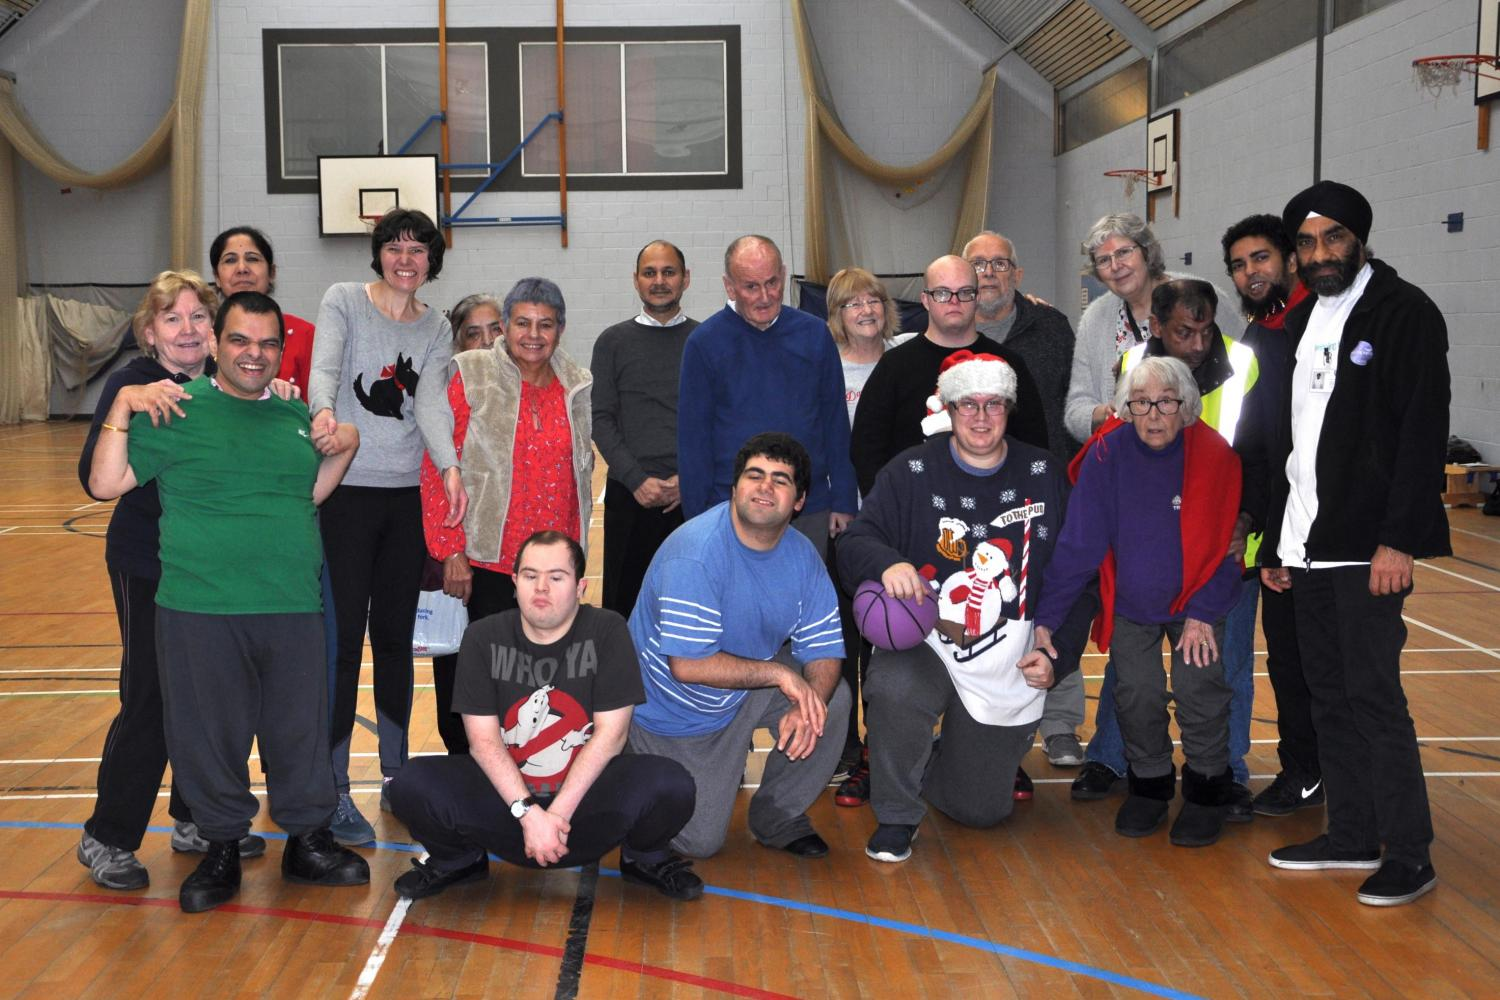 Community Club Hounslow - multi sports sessions for all disabled people - Hounslow Community School